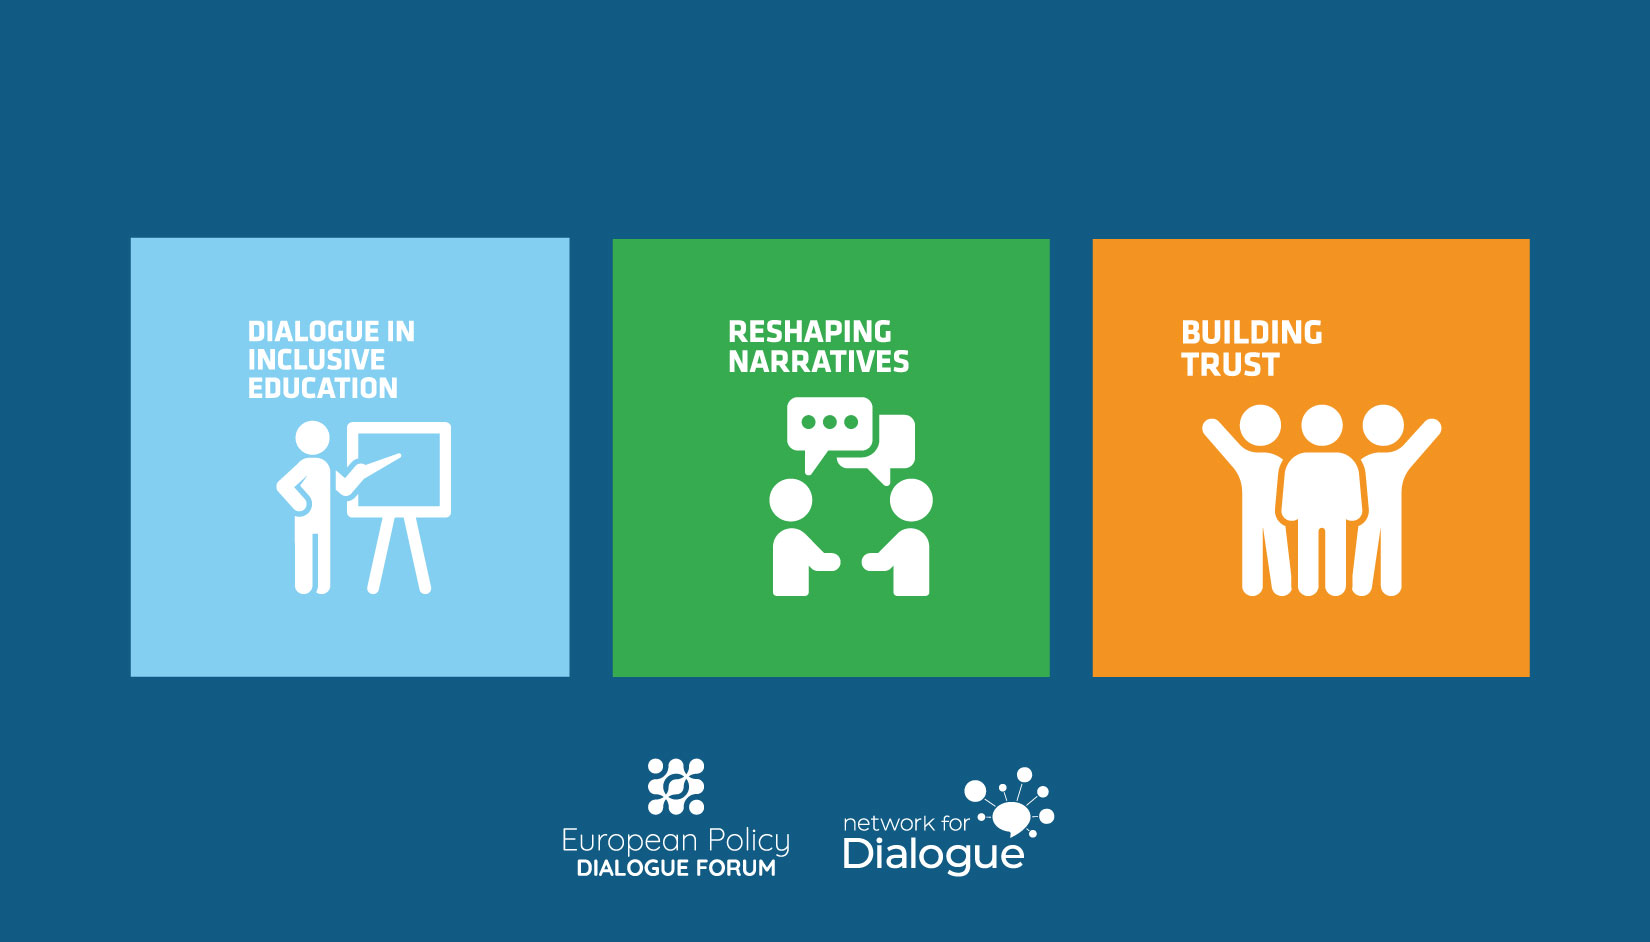 The Network for Dialogue published three policy briefs